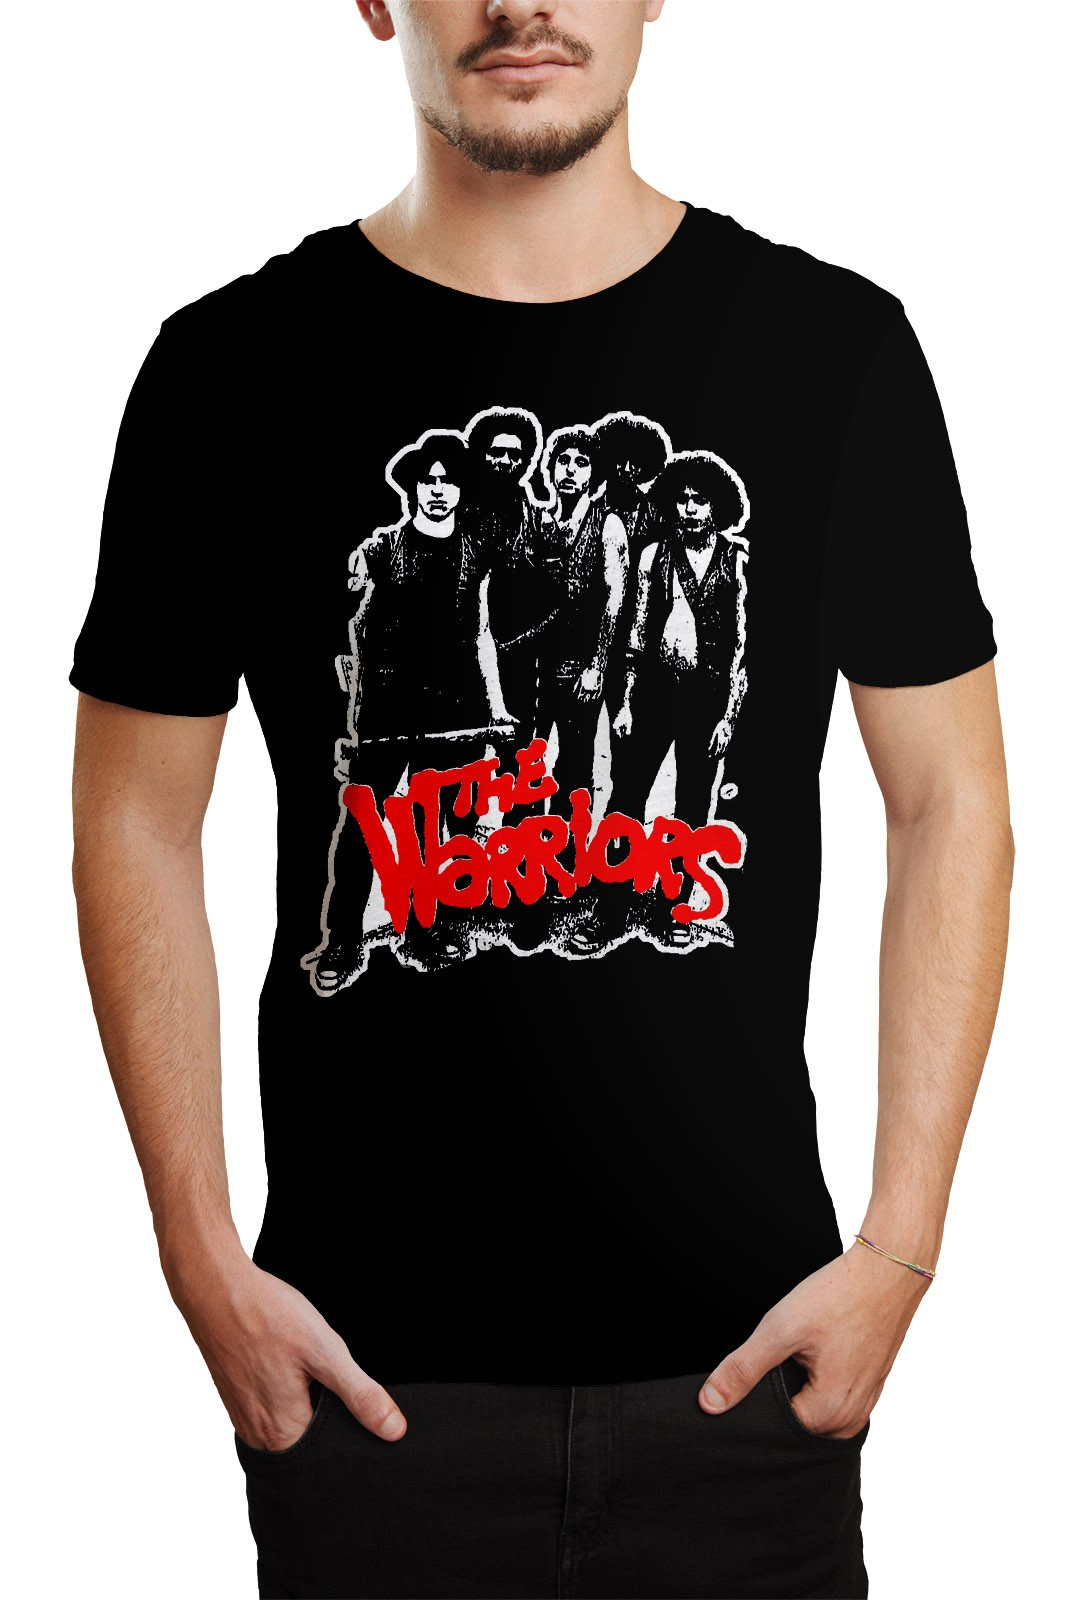 Camiseta HShop The  Warriors Preto - 097  - HShop